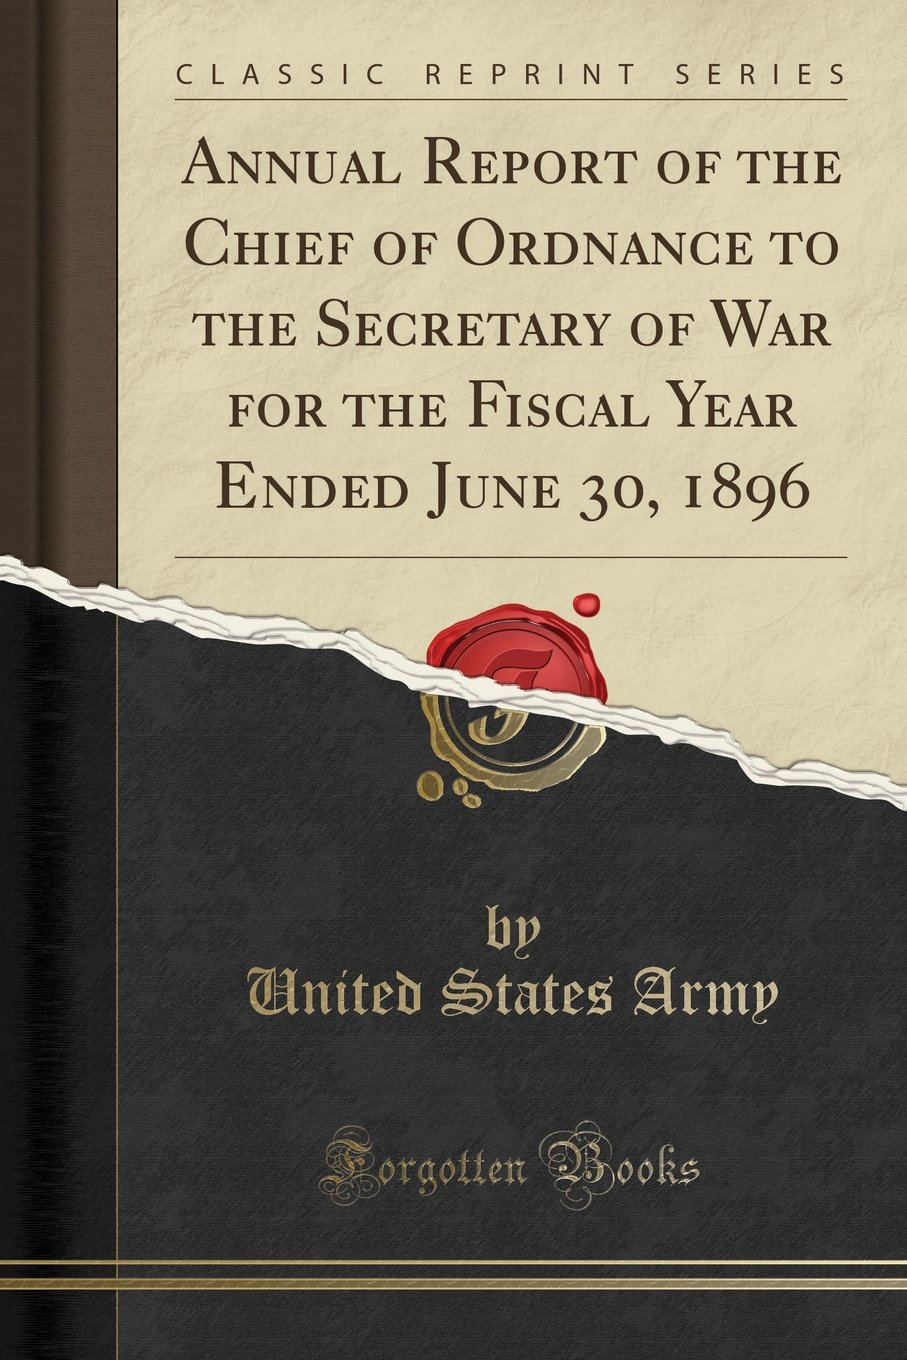 Annual Report of the Chief of Ordnance to the Secretary of War for the Fiscal Year Ended June 30, 1896 (Classic Reprint) pdf